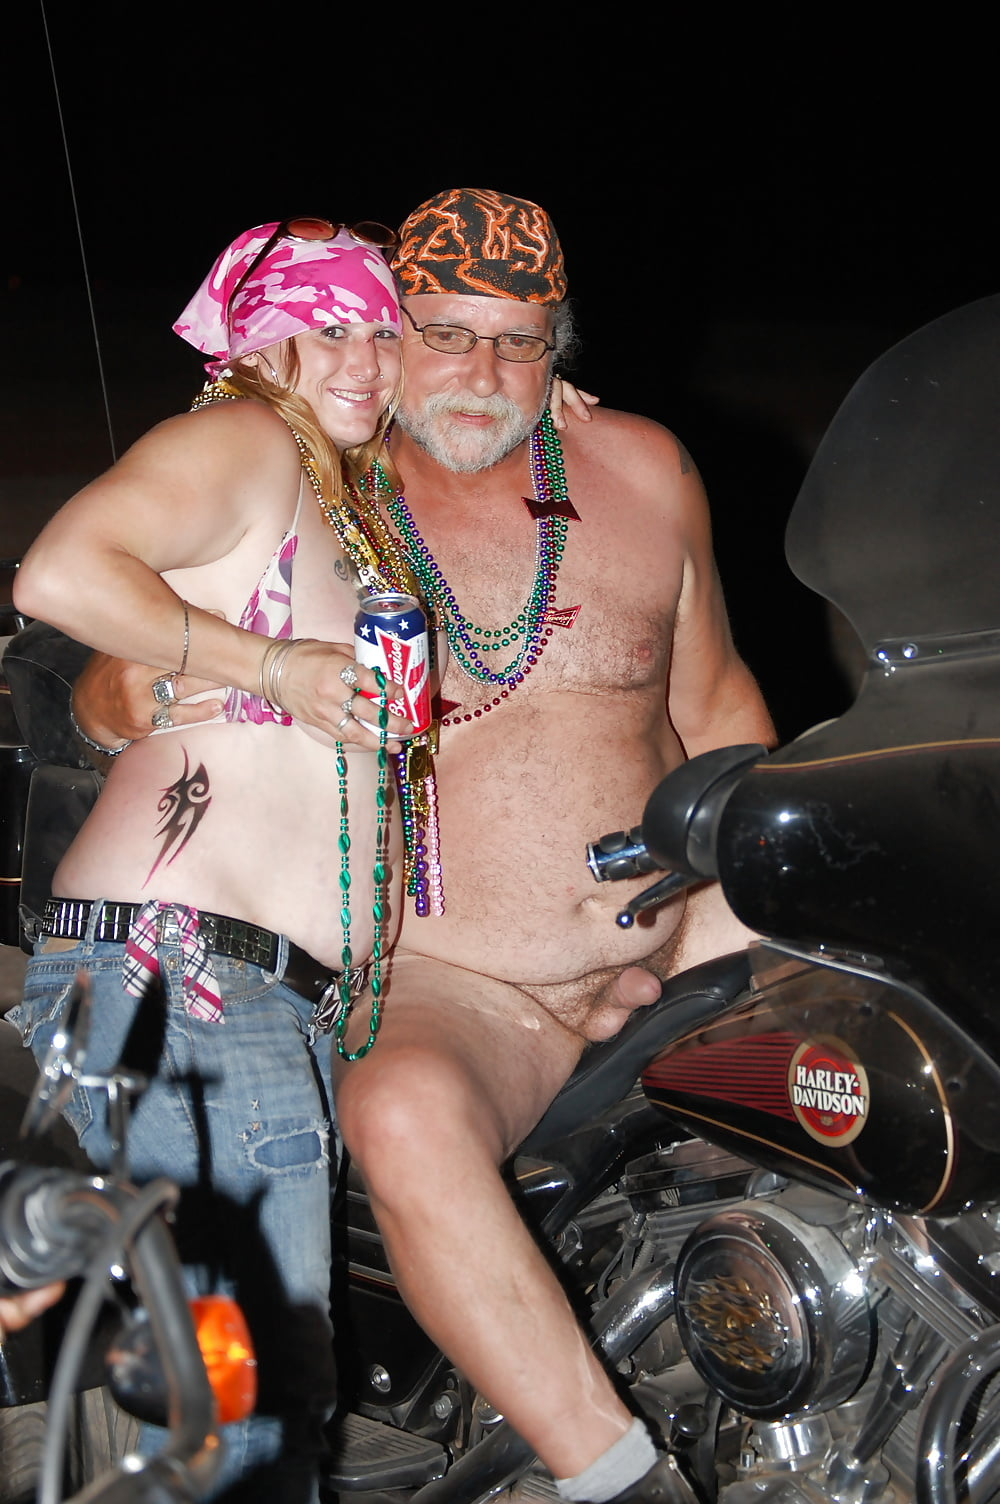 Iowa biker rally porn in most relevant